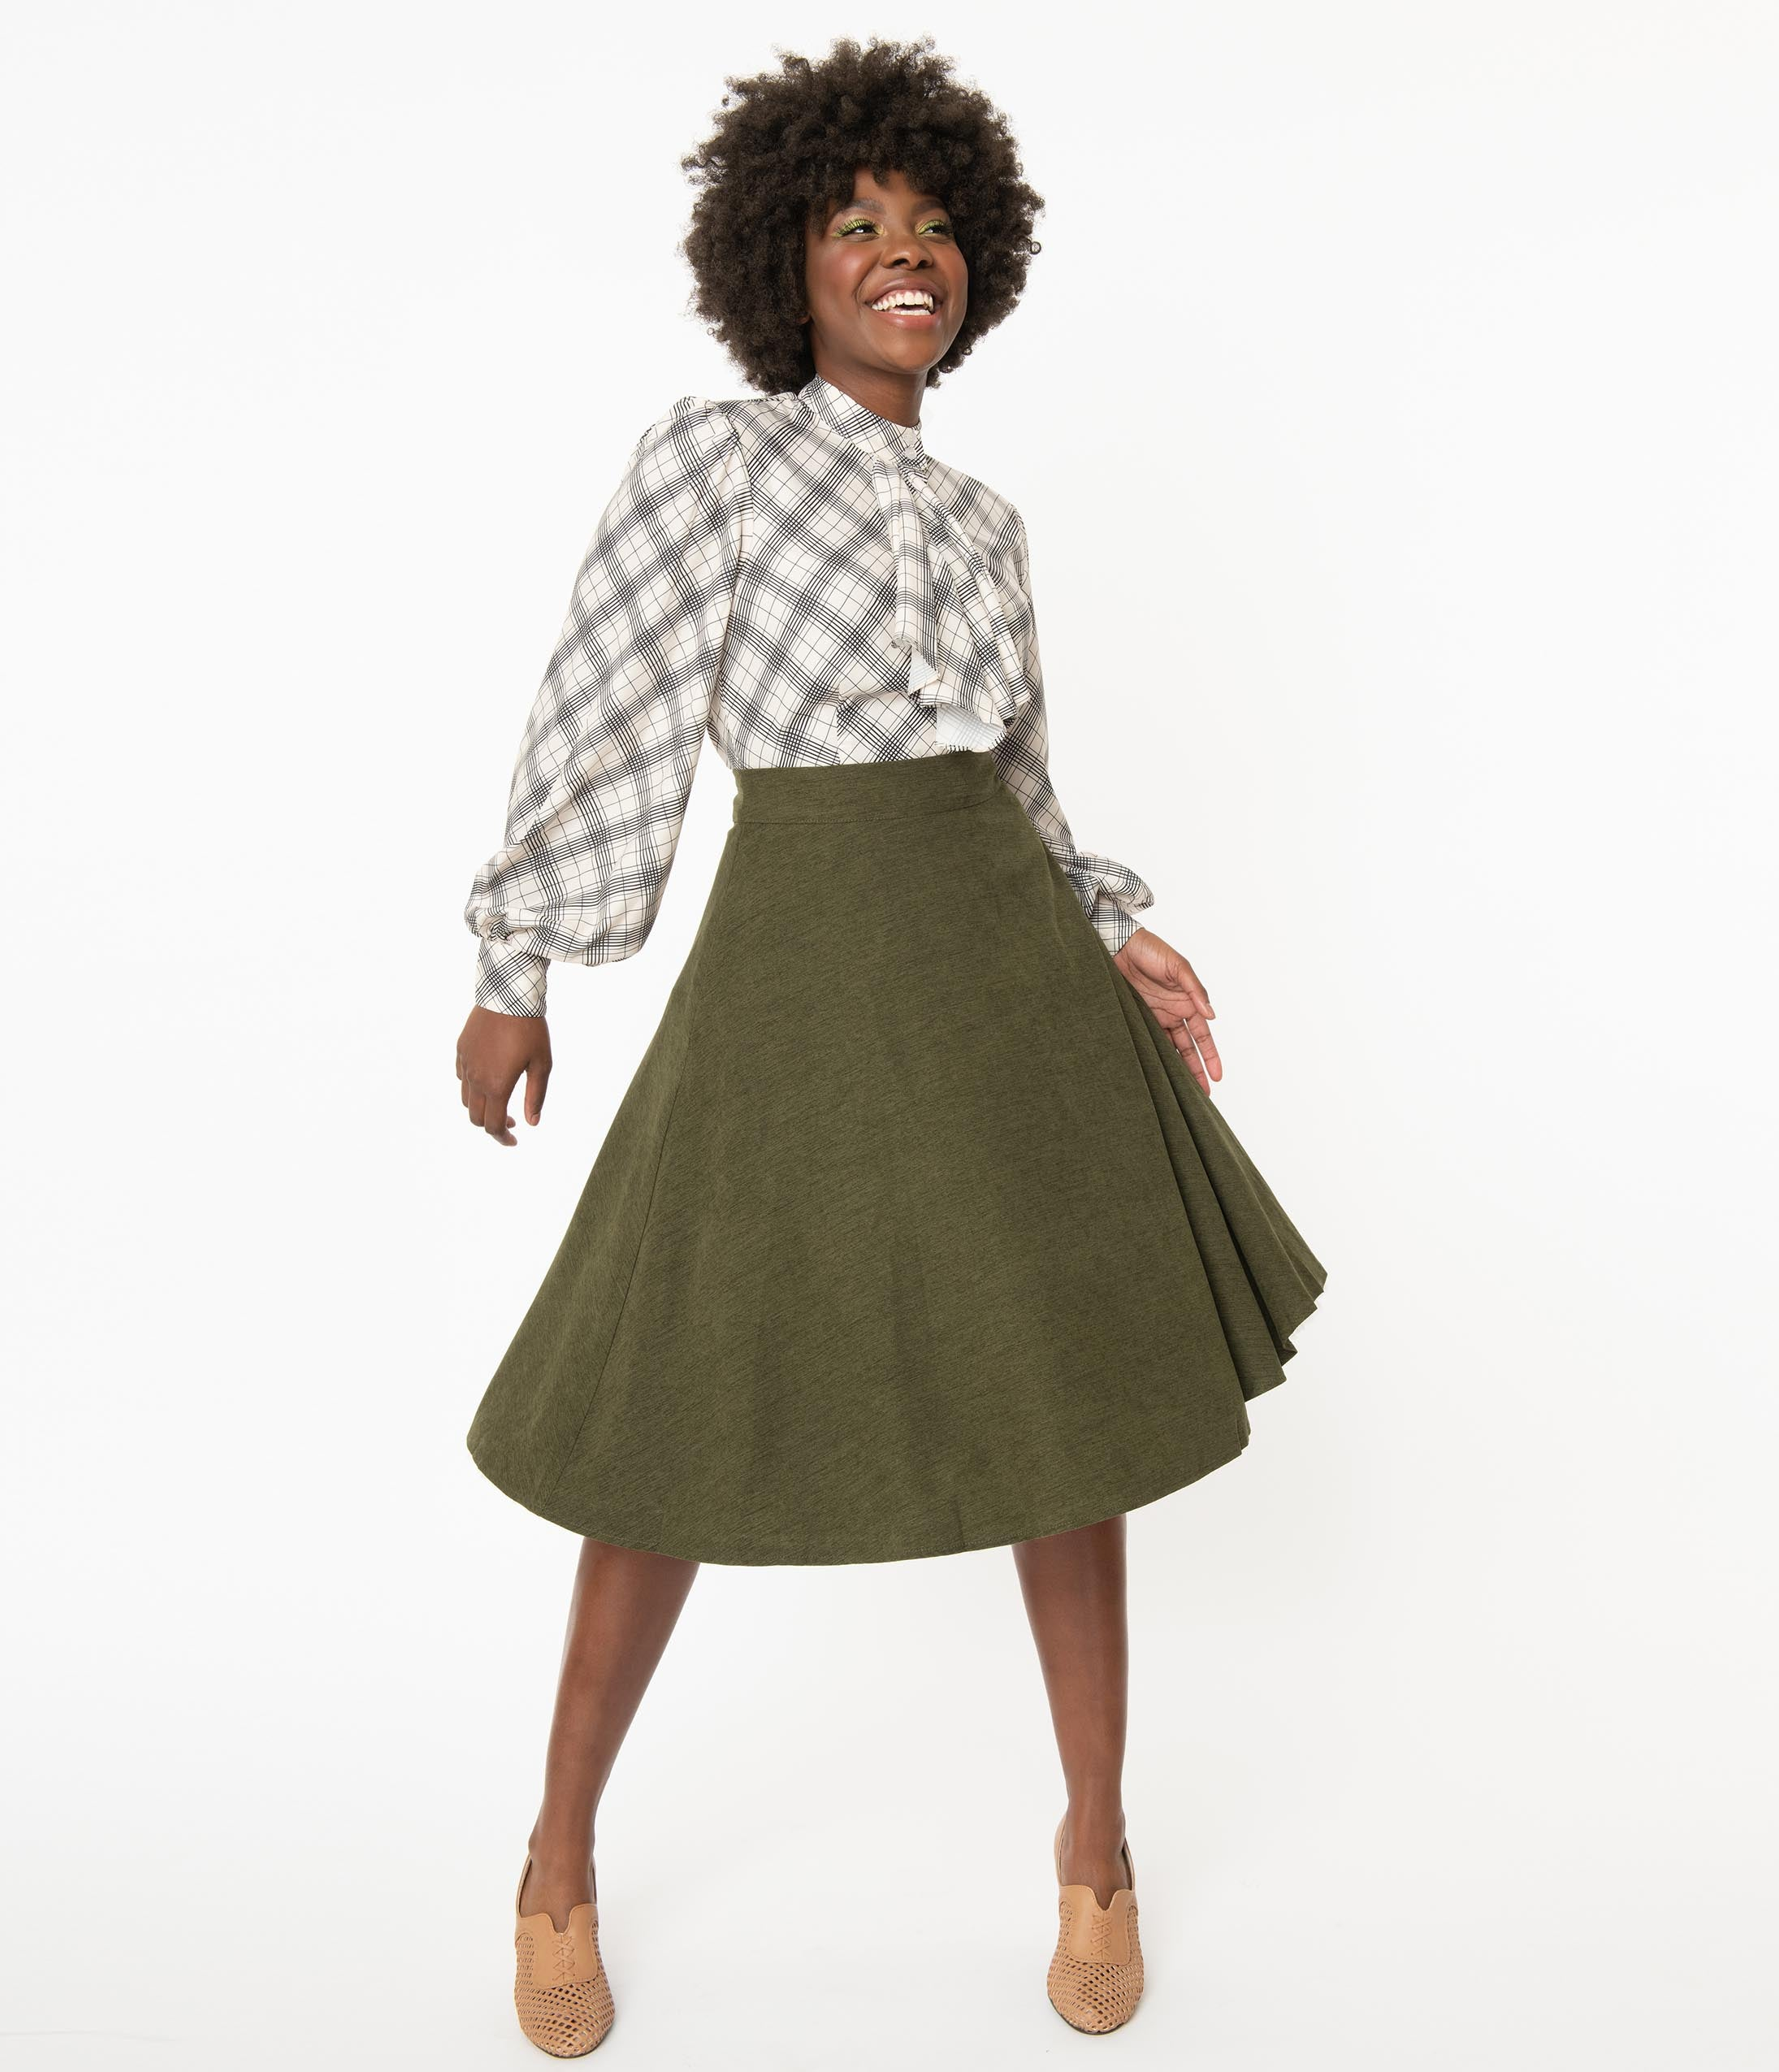 1950s Swing Skirt, Poodle Skirt, Pencil Skirts 1950S Olive Green High Waist Sophisticated Swing Skirt $48.00 AT vintagedancer.com